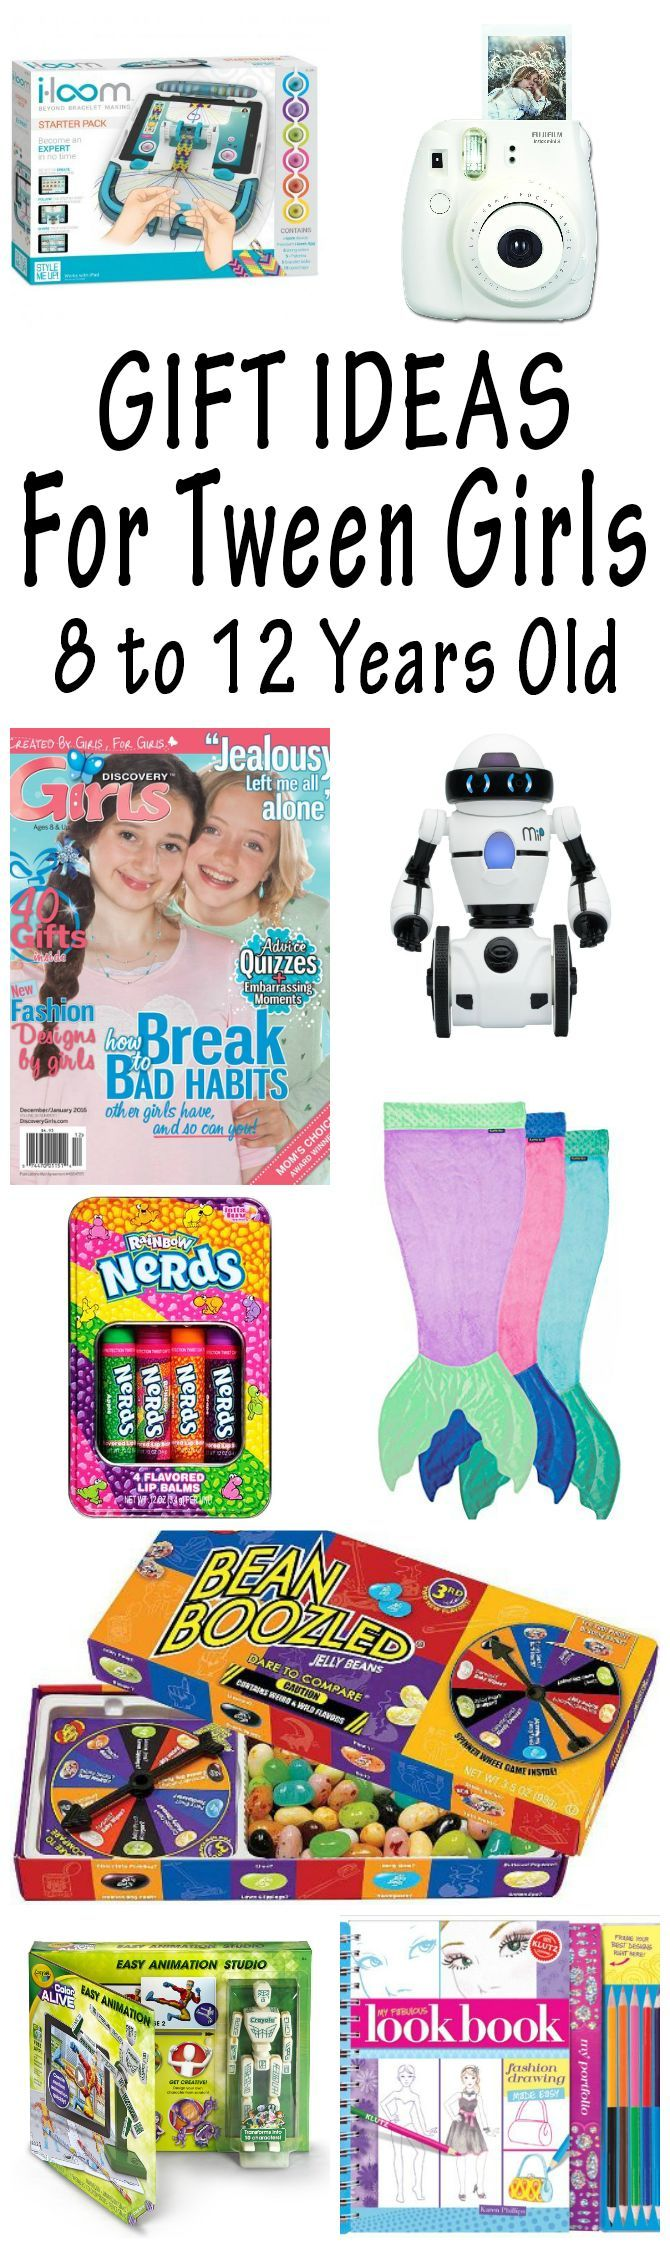 Gift Ideas For Tween Girls They Will Love: 2018 Gift Guide ...